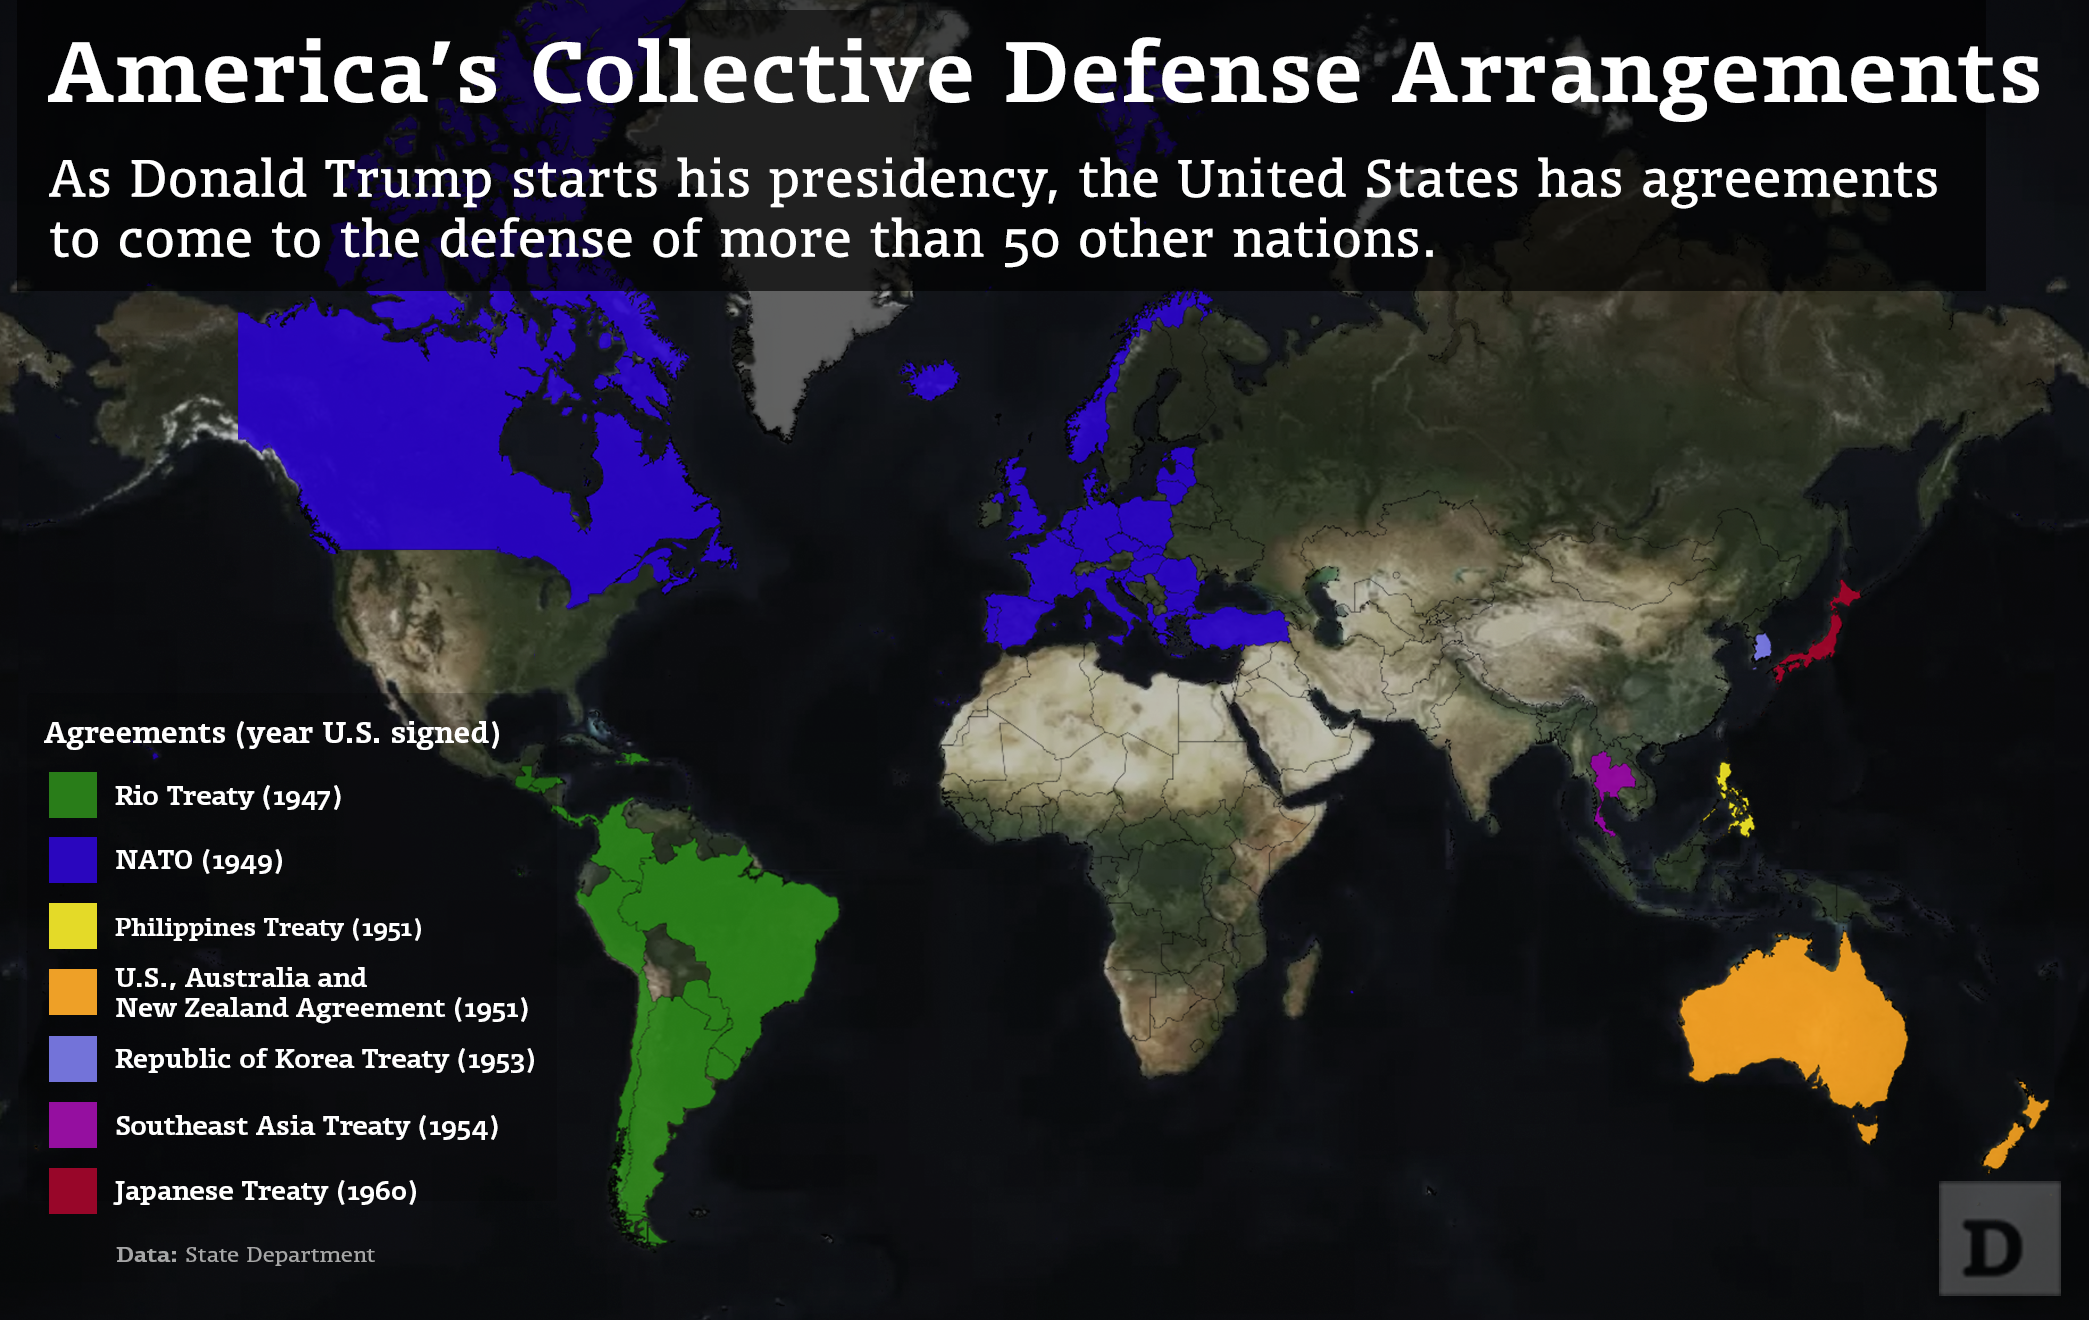 Mapped Americas Collective Defense Agreements Defense One